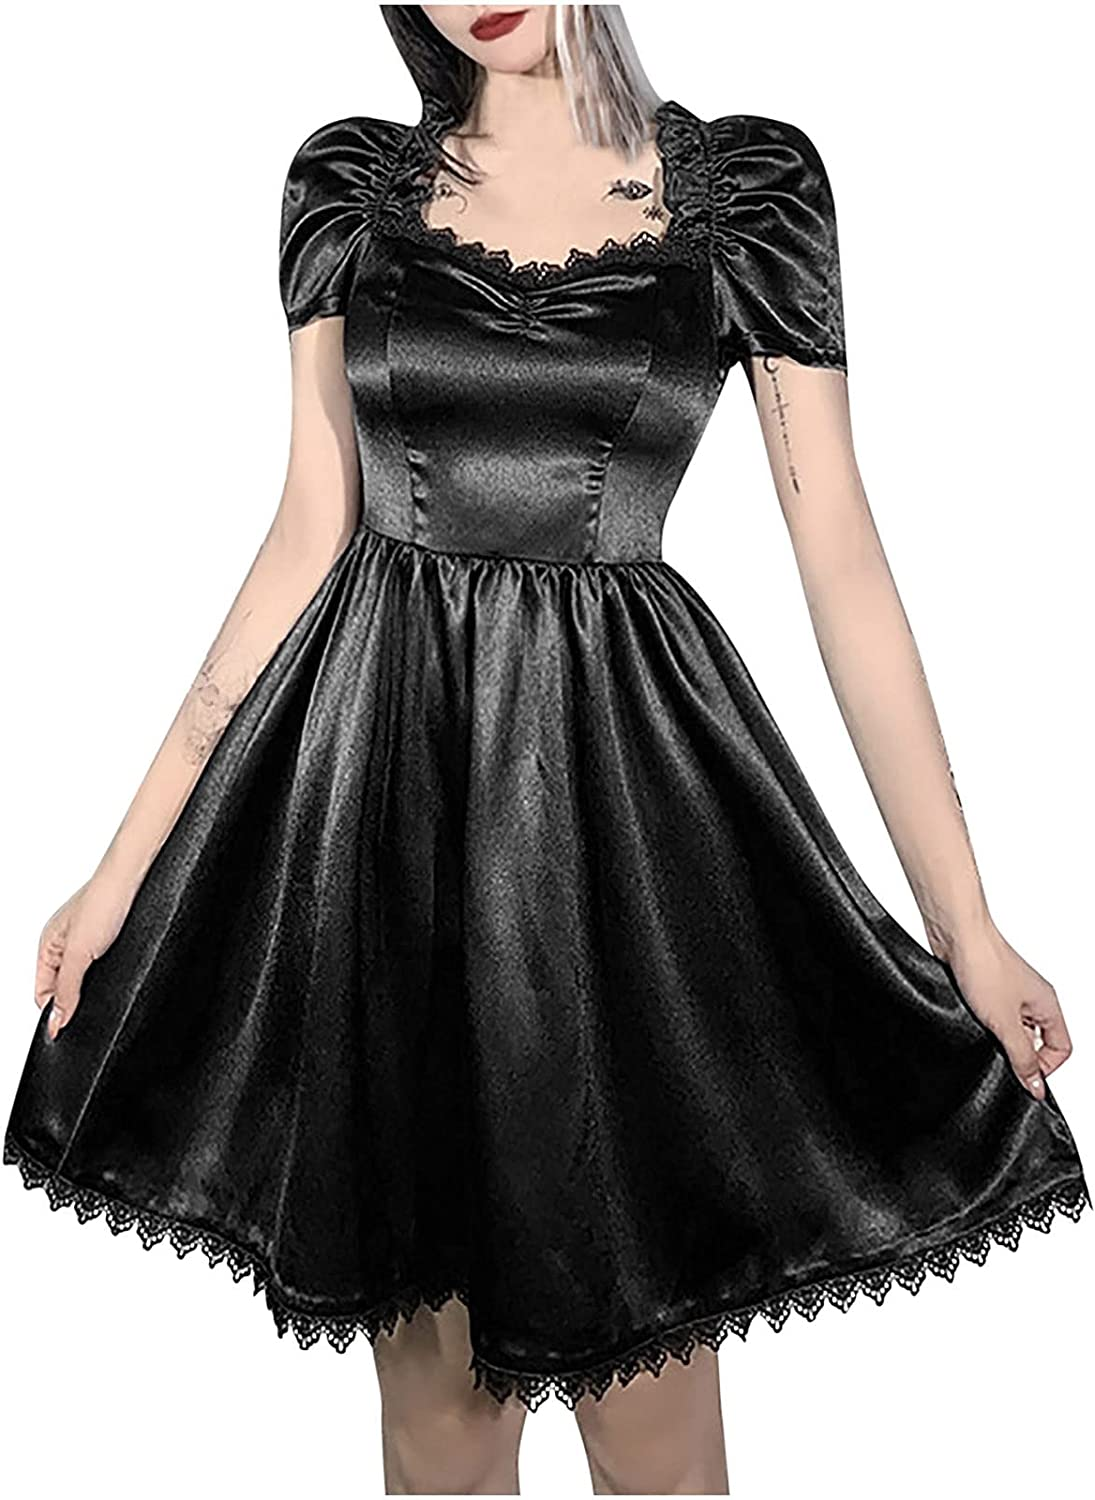 Womens Gothic Lace Puff Sleeve Dress Trendy Sexy Square Neck Short Sleeve Black Party Club Night Evening Dresses